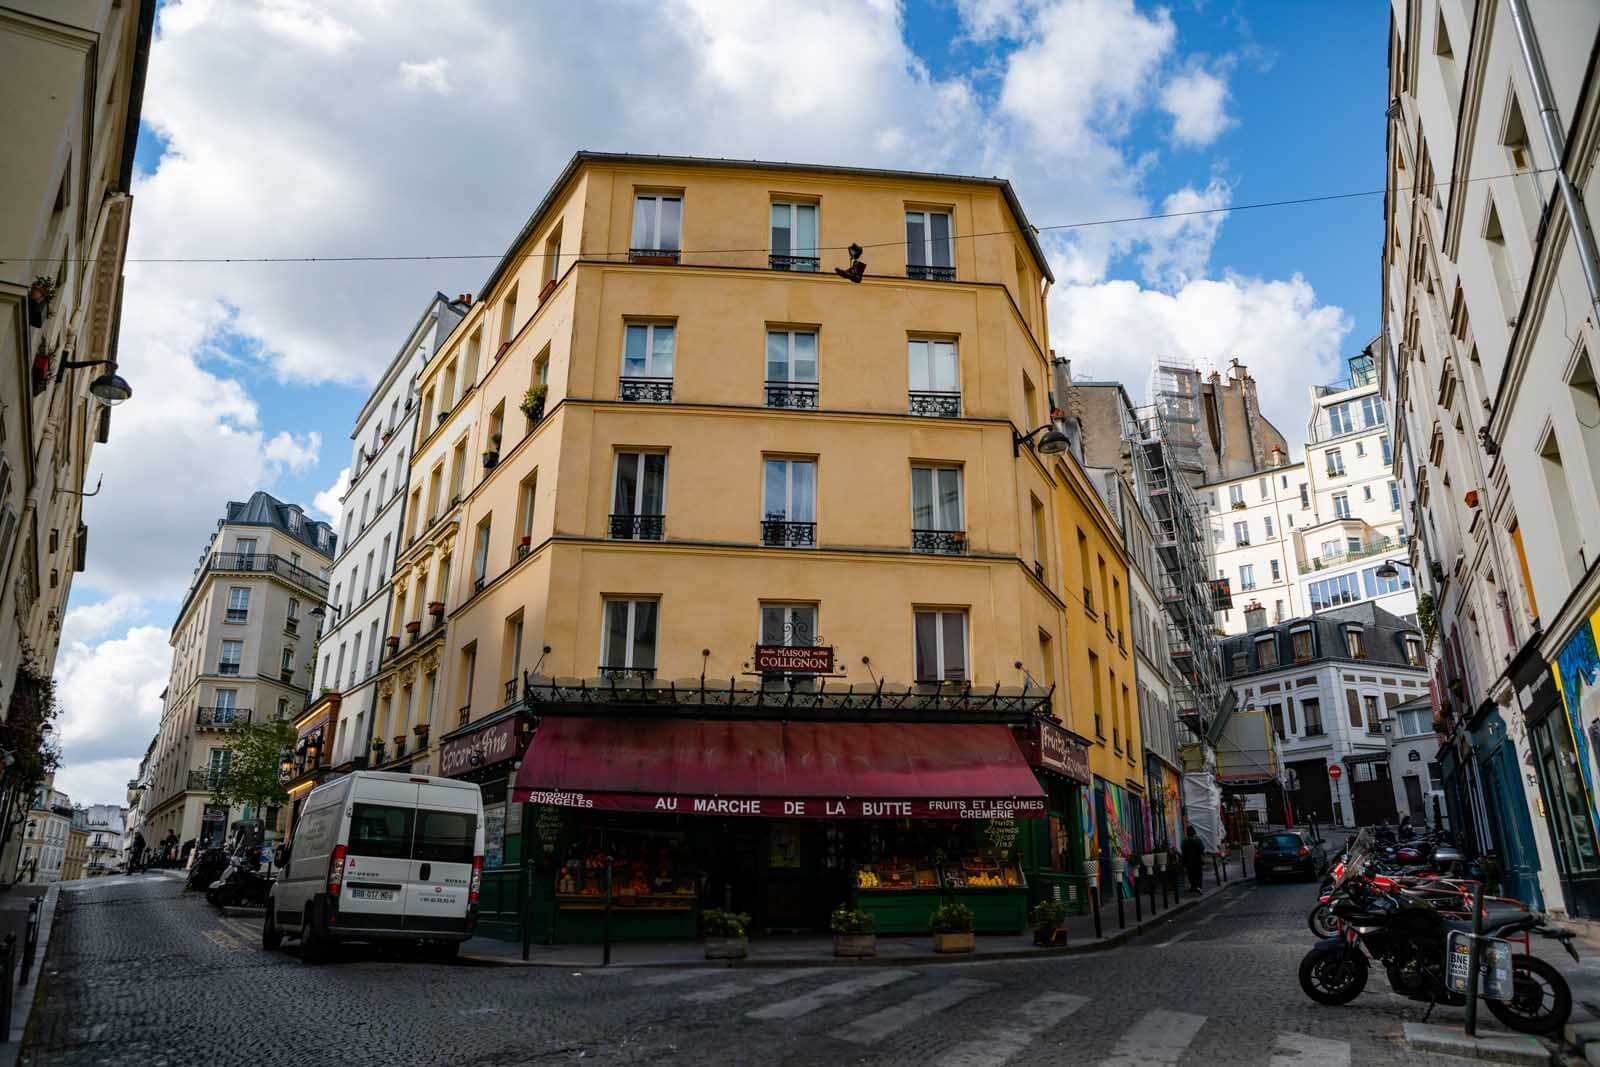 Maison Collignon grocery store and filming location for Amelie in Montmartre Paris